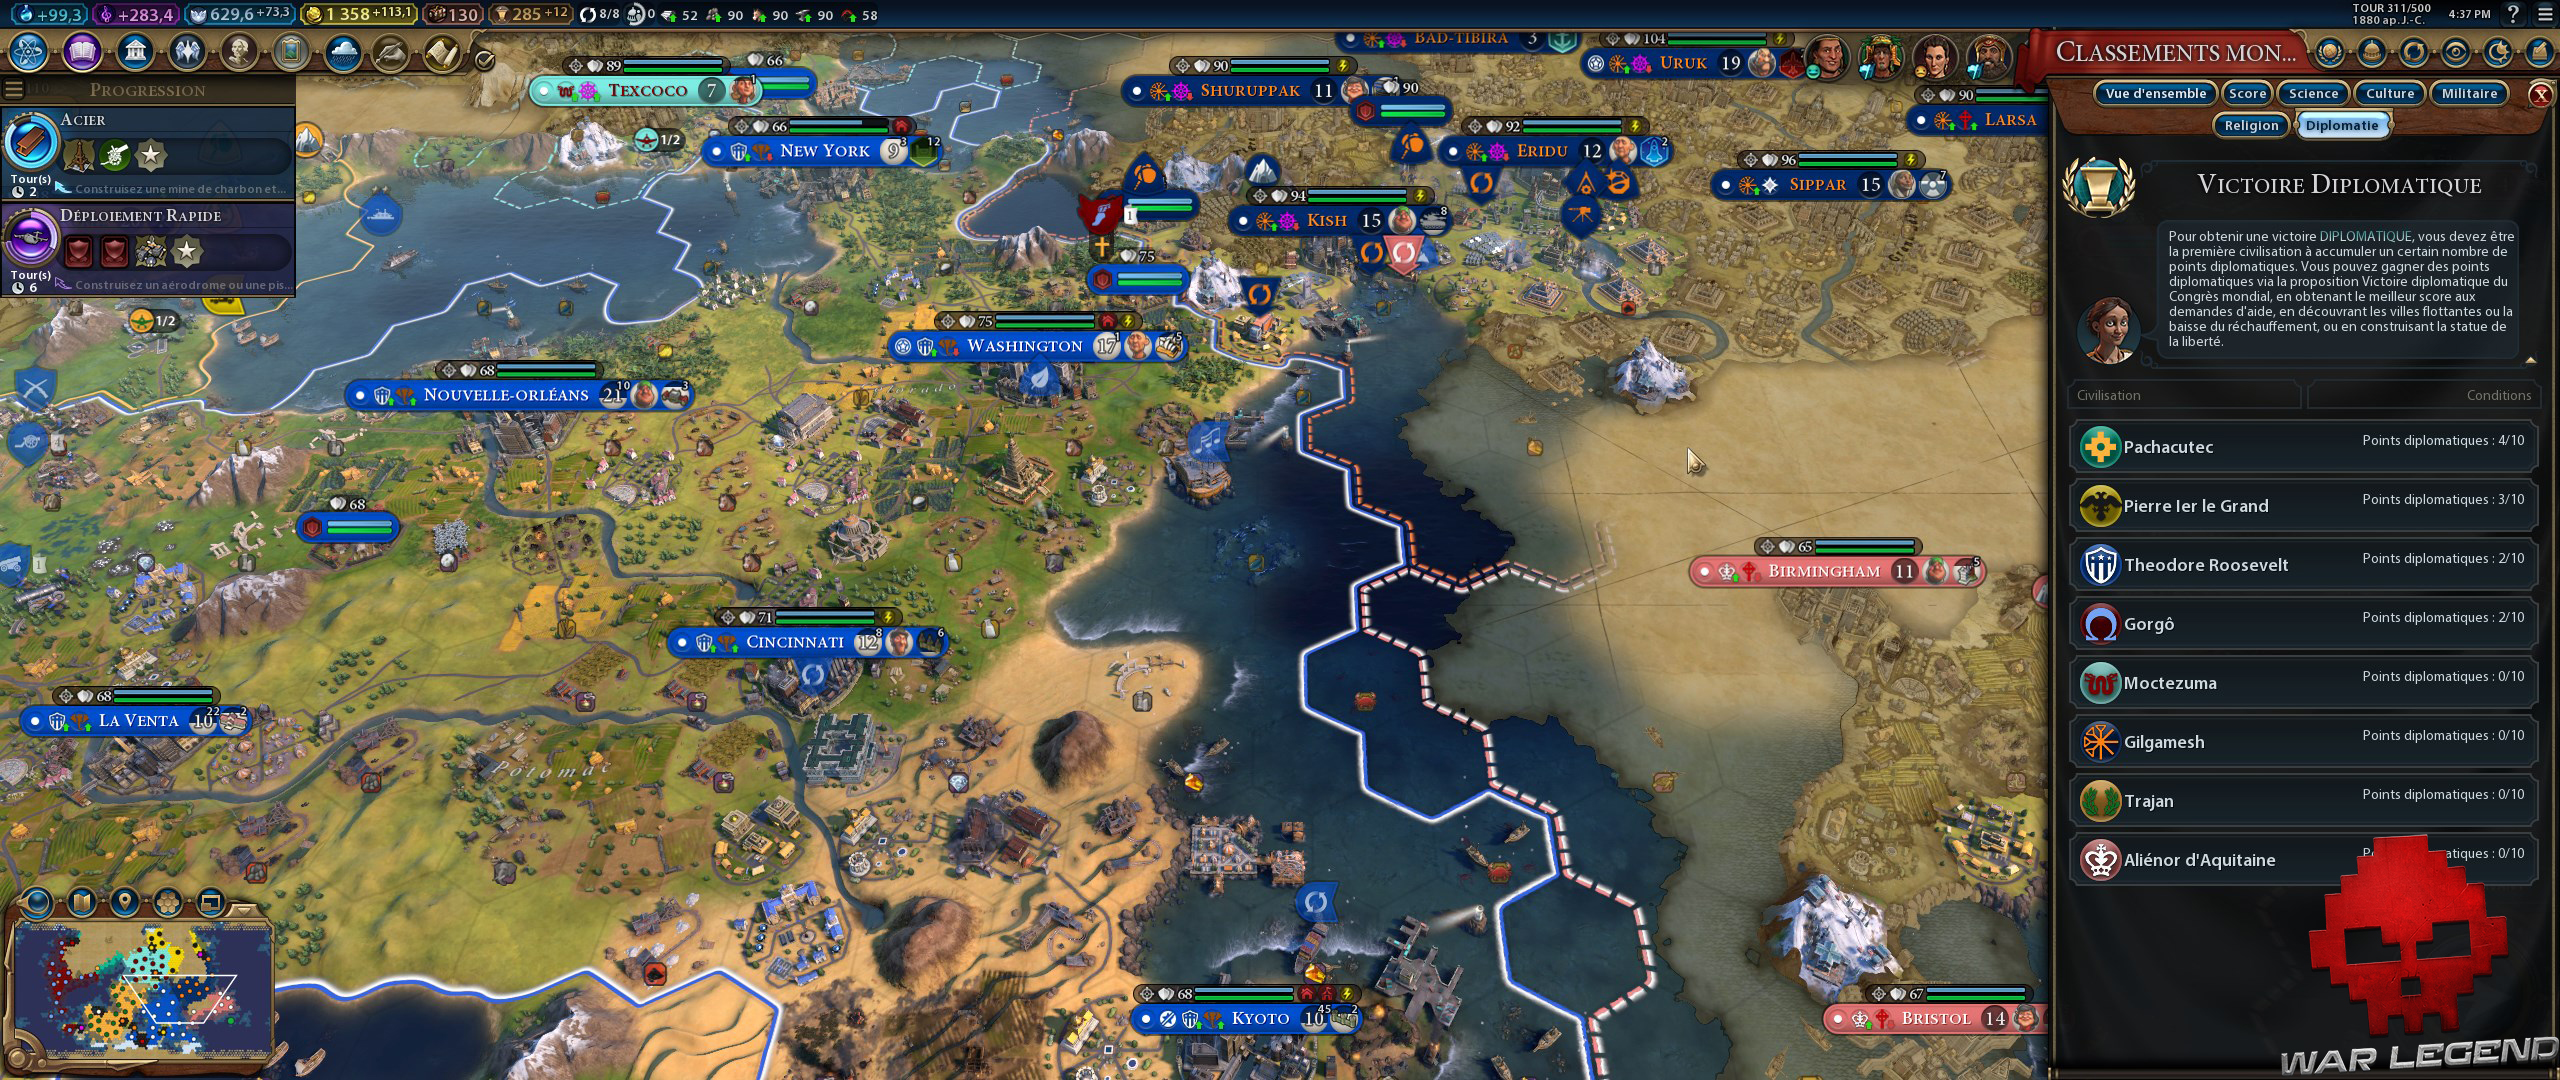 Test Civilization VI Gathering Storm points de victoire diplomatique